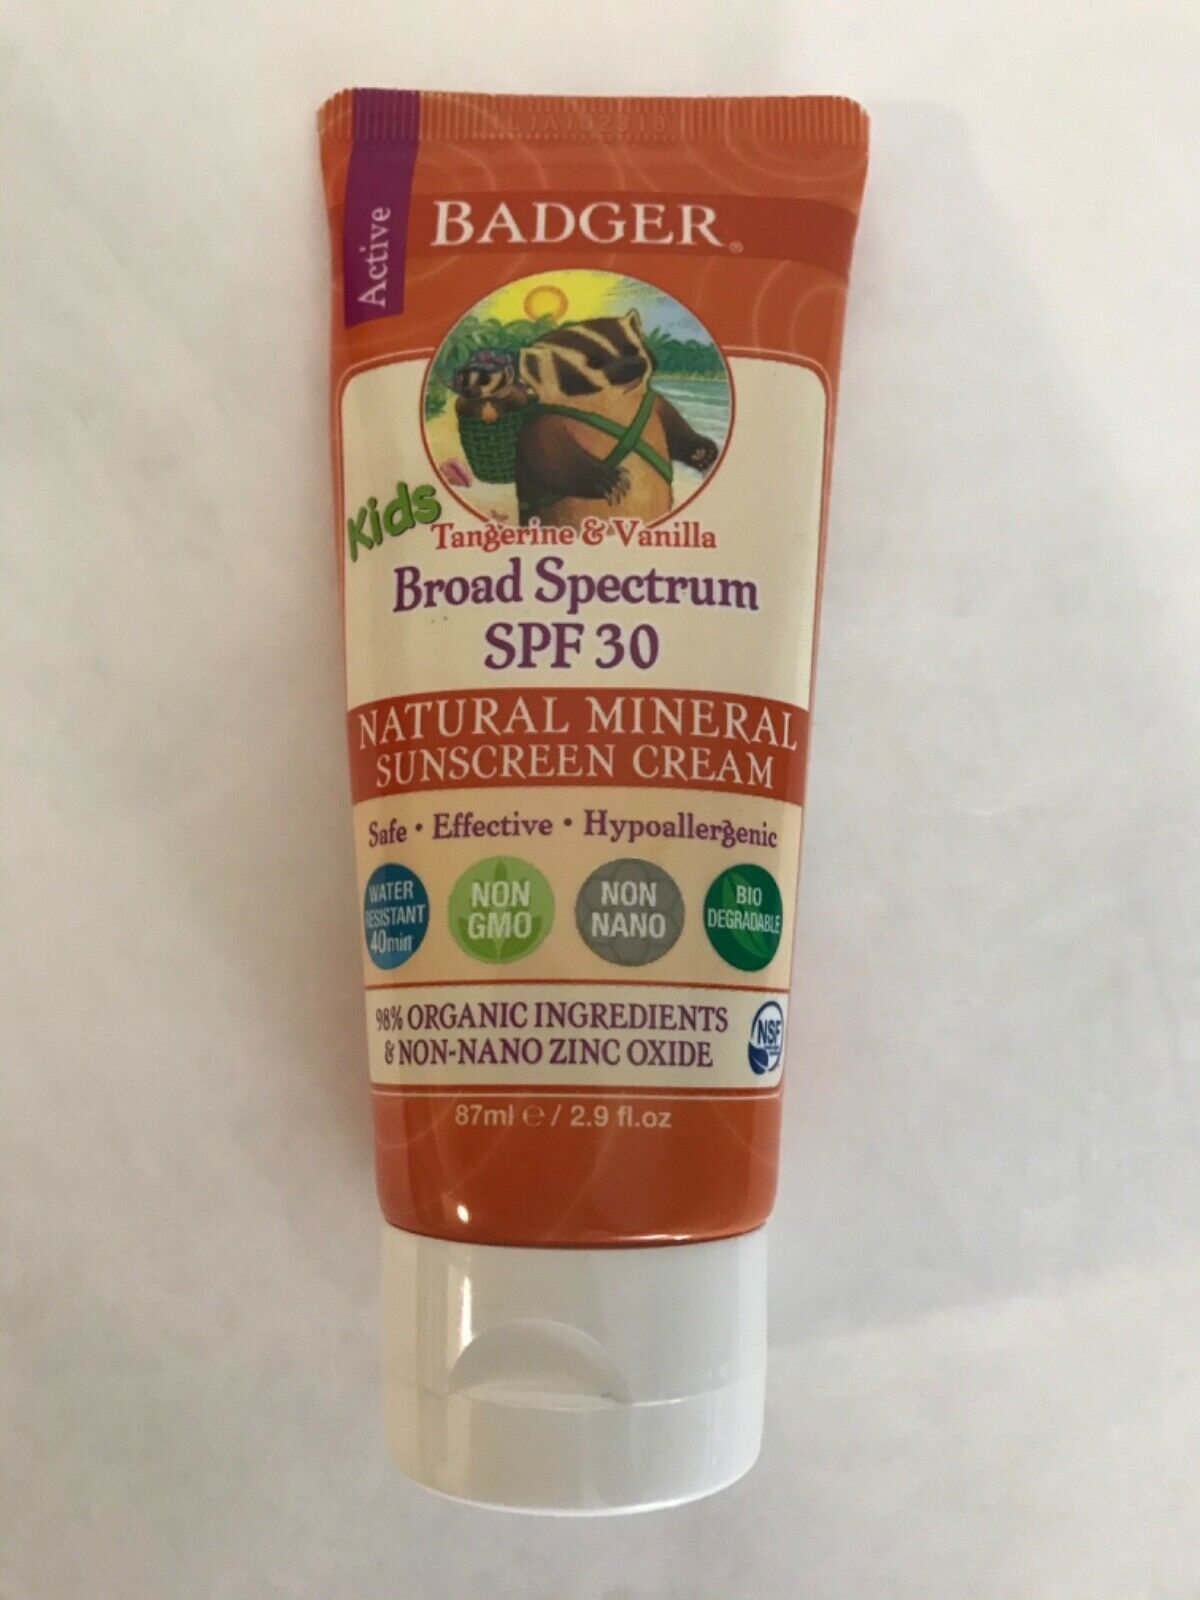 Primary image for Badger Active Kids Tangerine & Vanilla SPF 30 Natural Mineral Sunscreen Cream